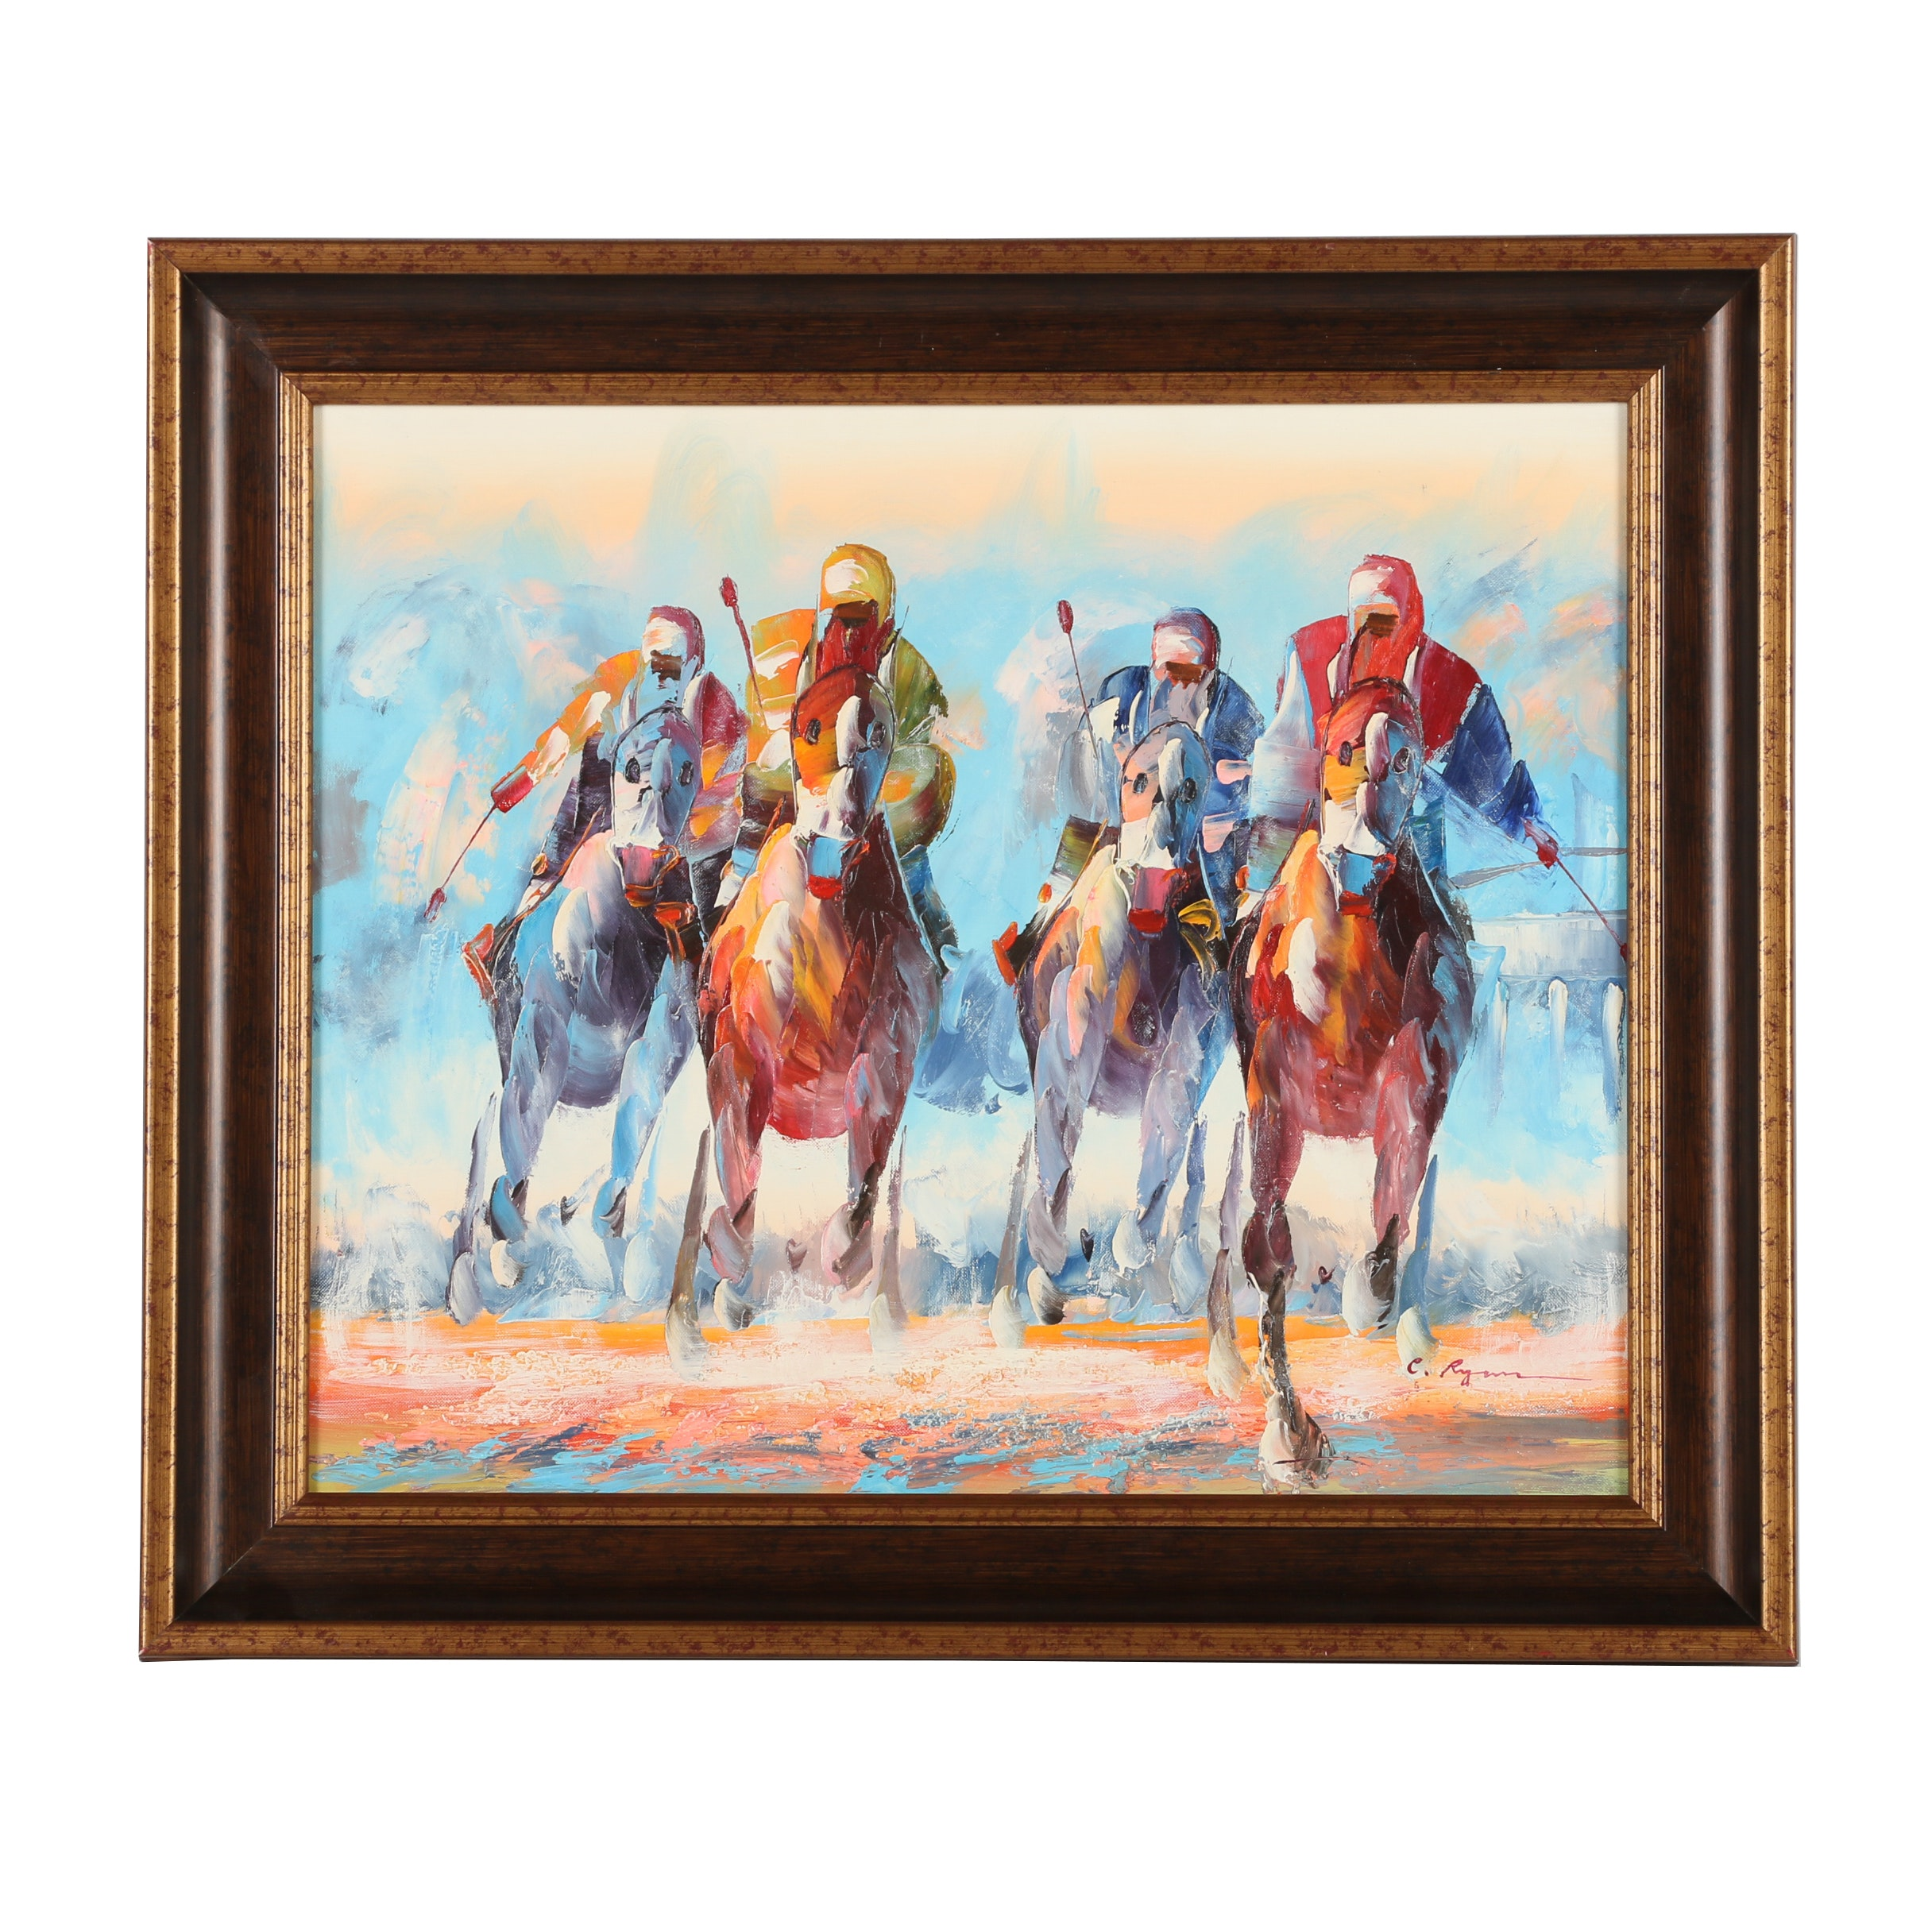 C. Ryan Oil Painting of a Horserace